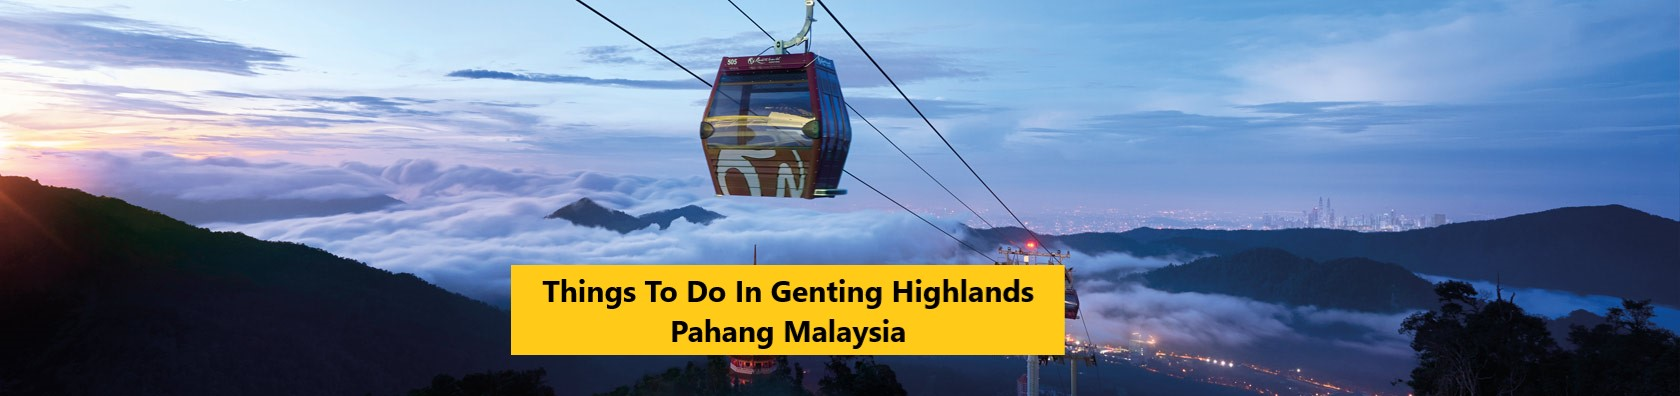 Things To Do In Genting Highlands Pahang Malaysia